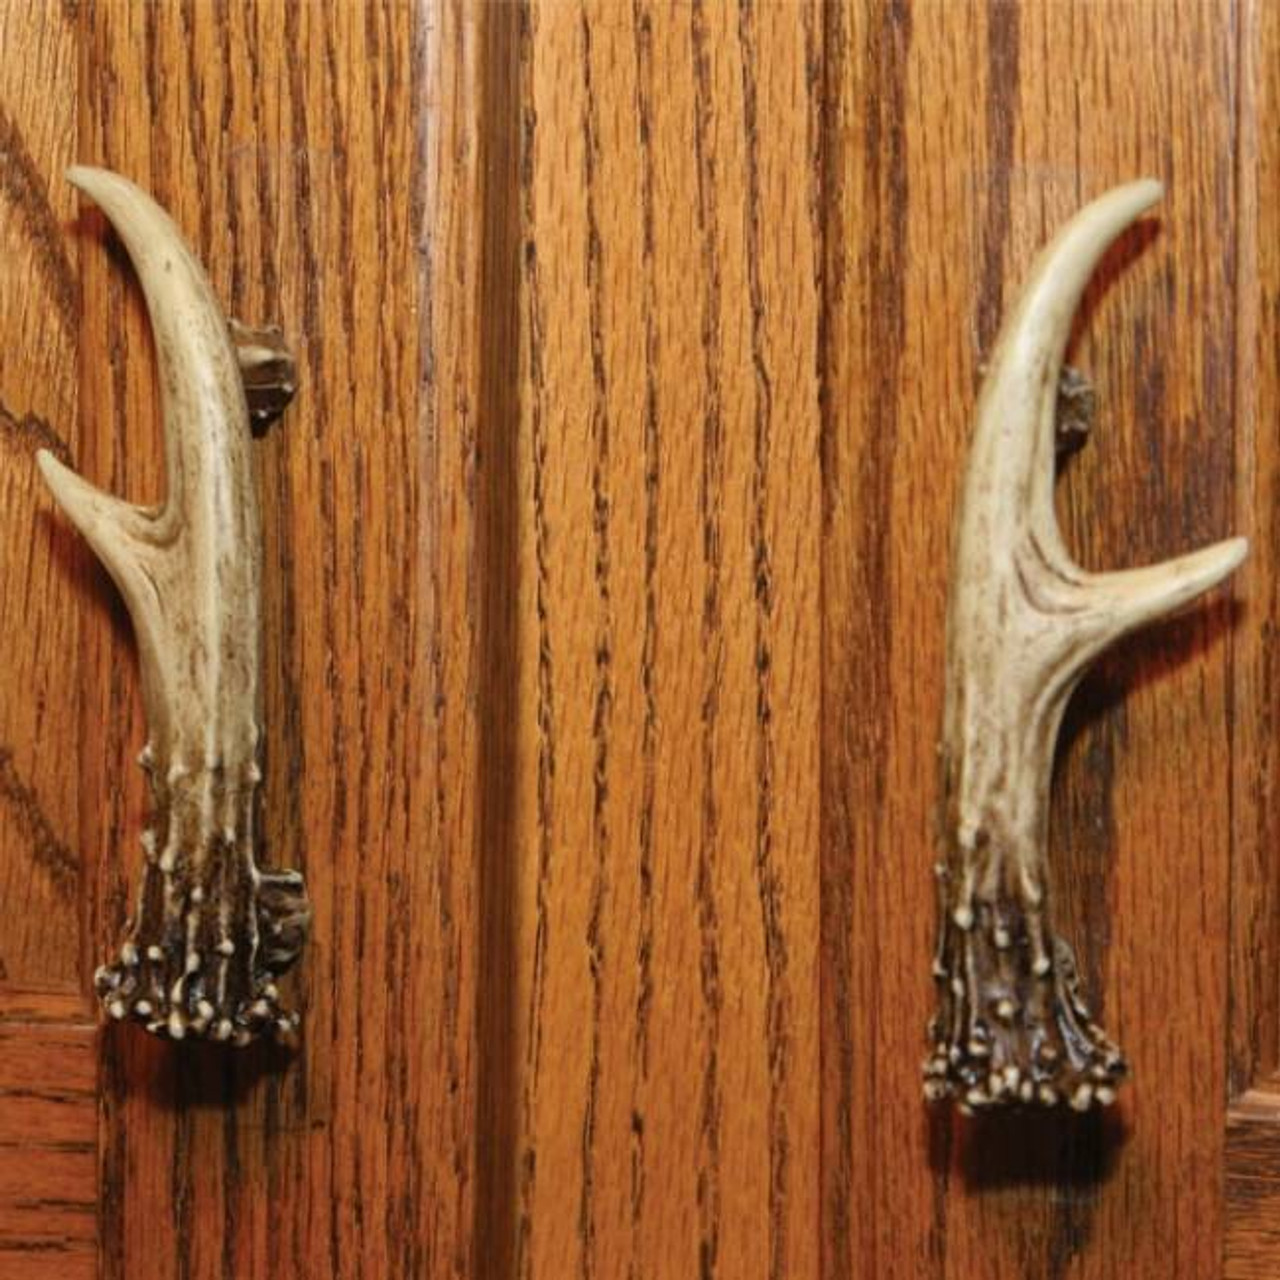 Rustic Cabinet Handles, Drawer Pulls, and Knobs